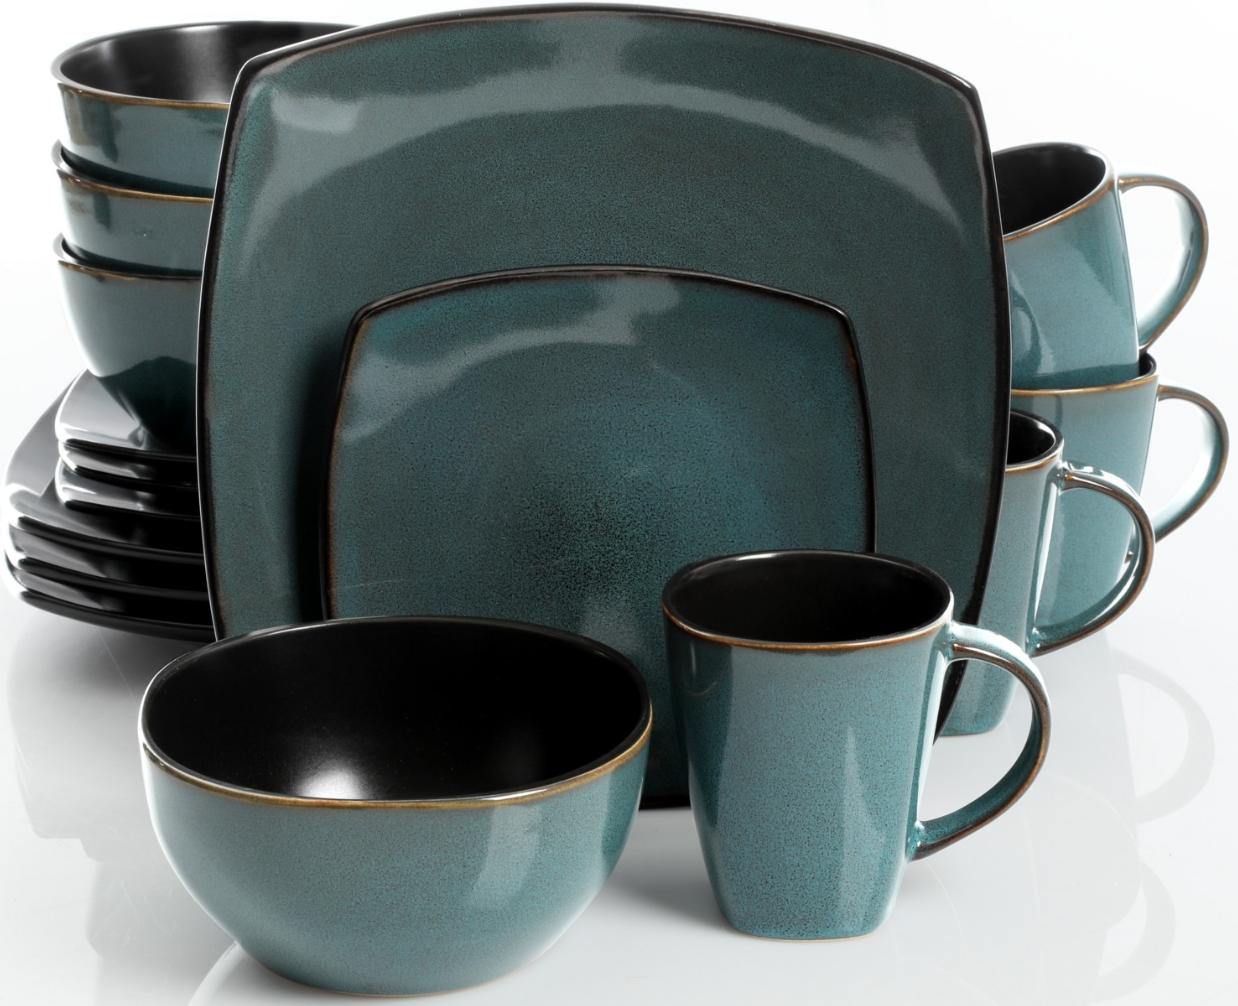 A teal dinnerware set with dinner plates, dessert plates, bowls and mugs.